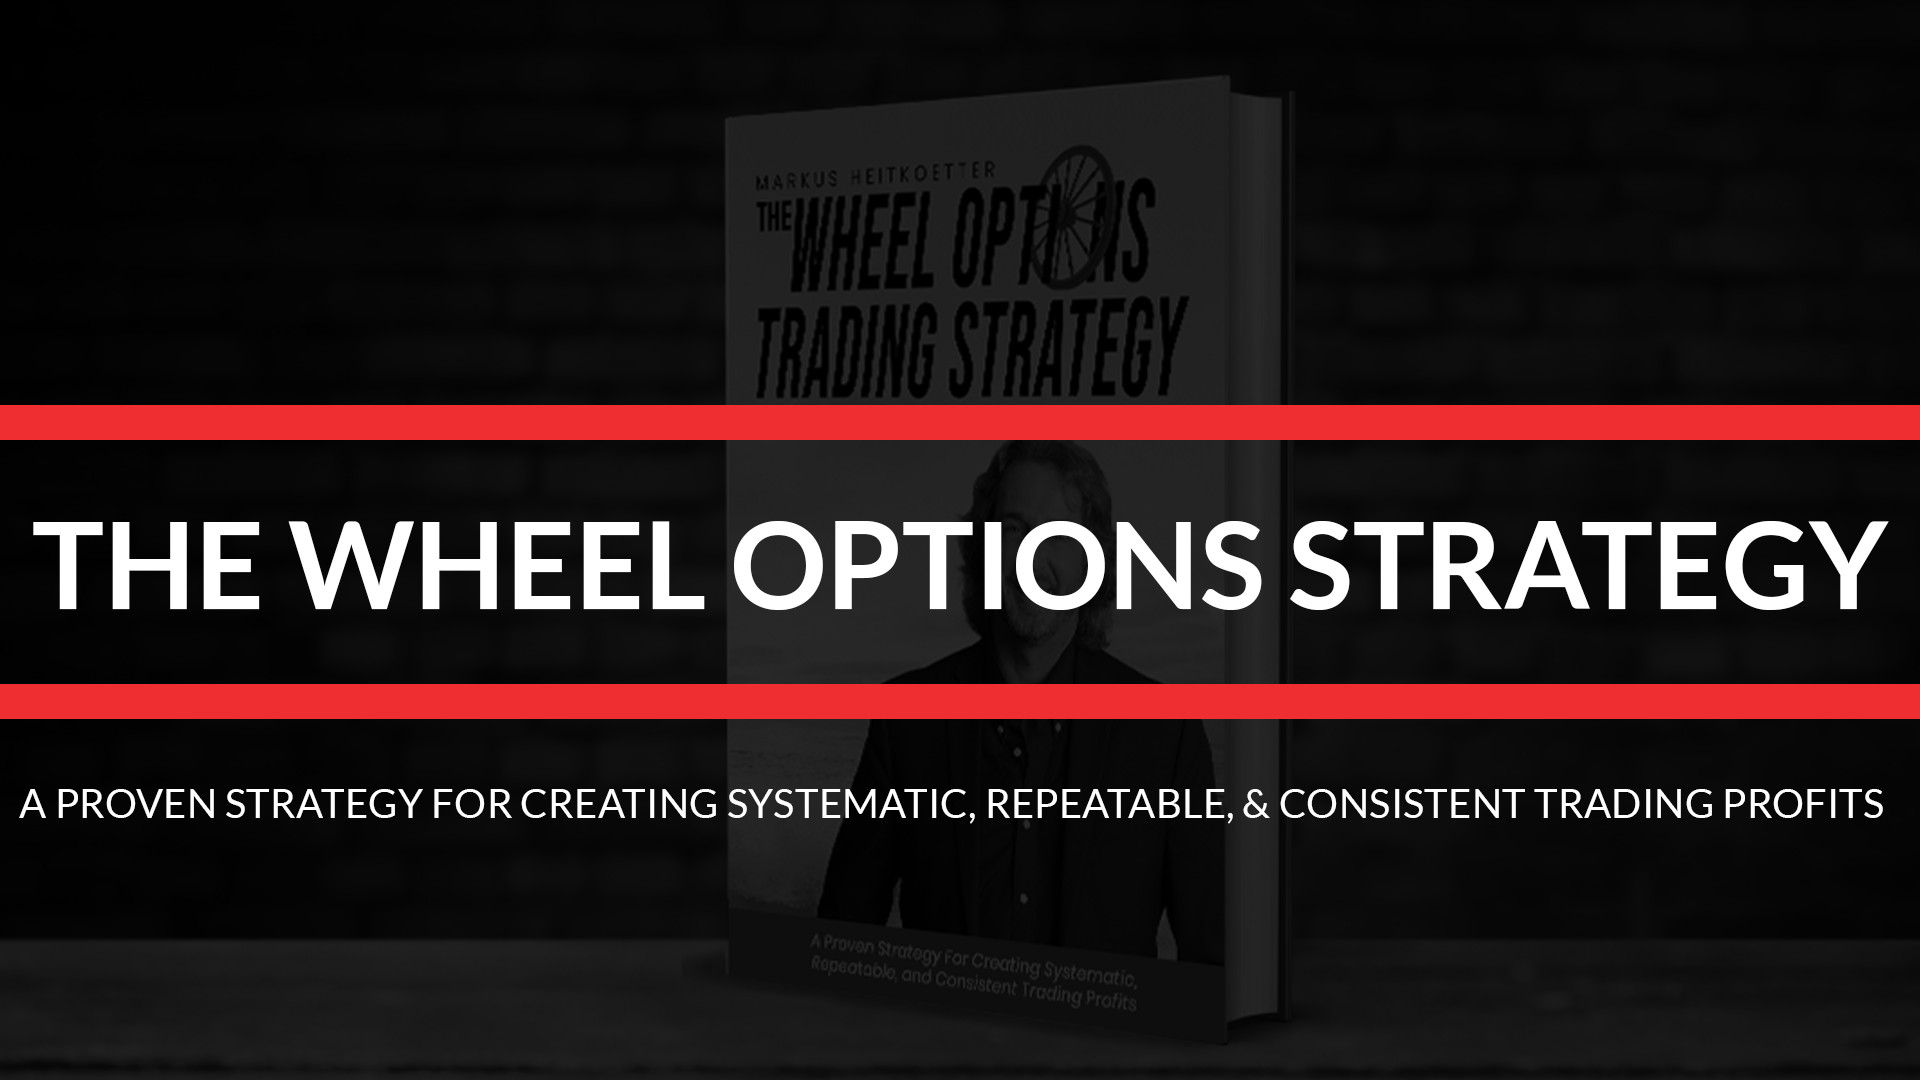 The Wheel Options Strategy Product Image